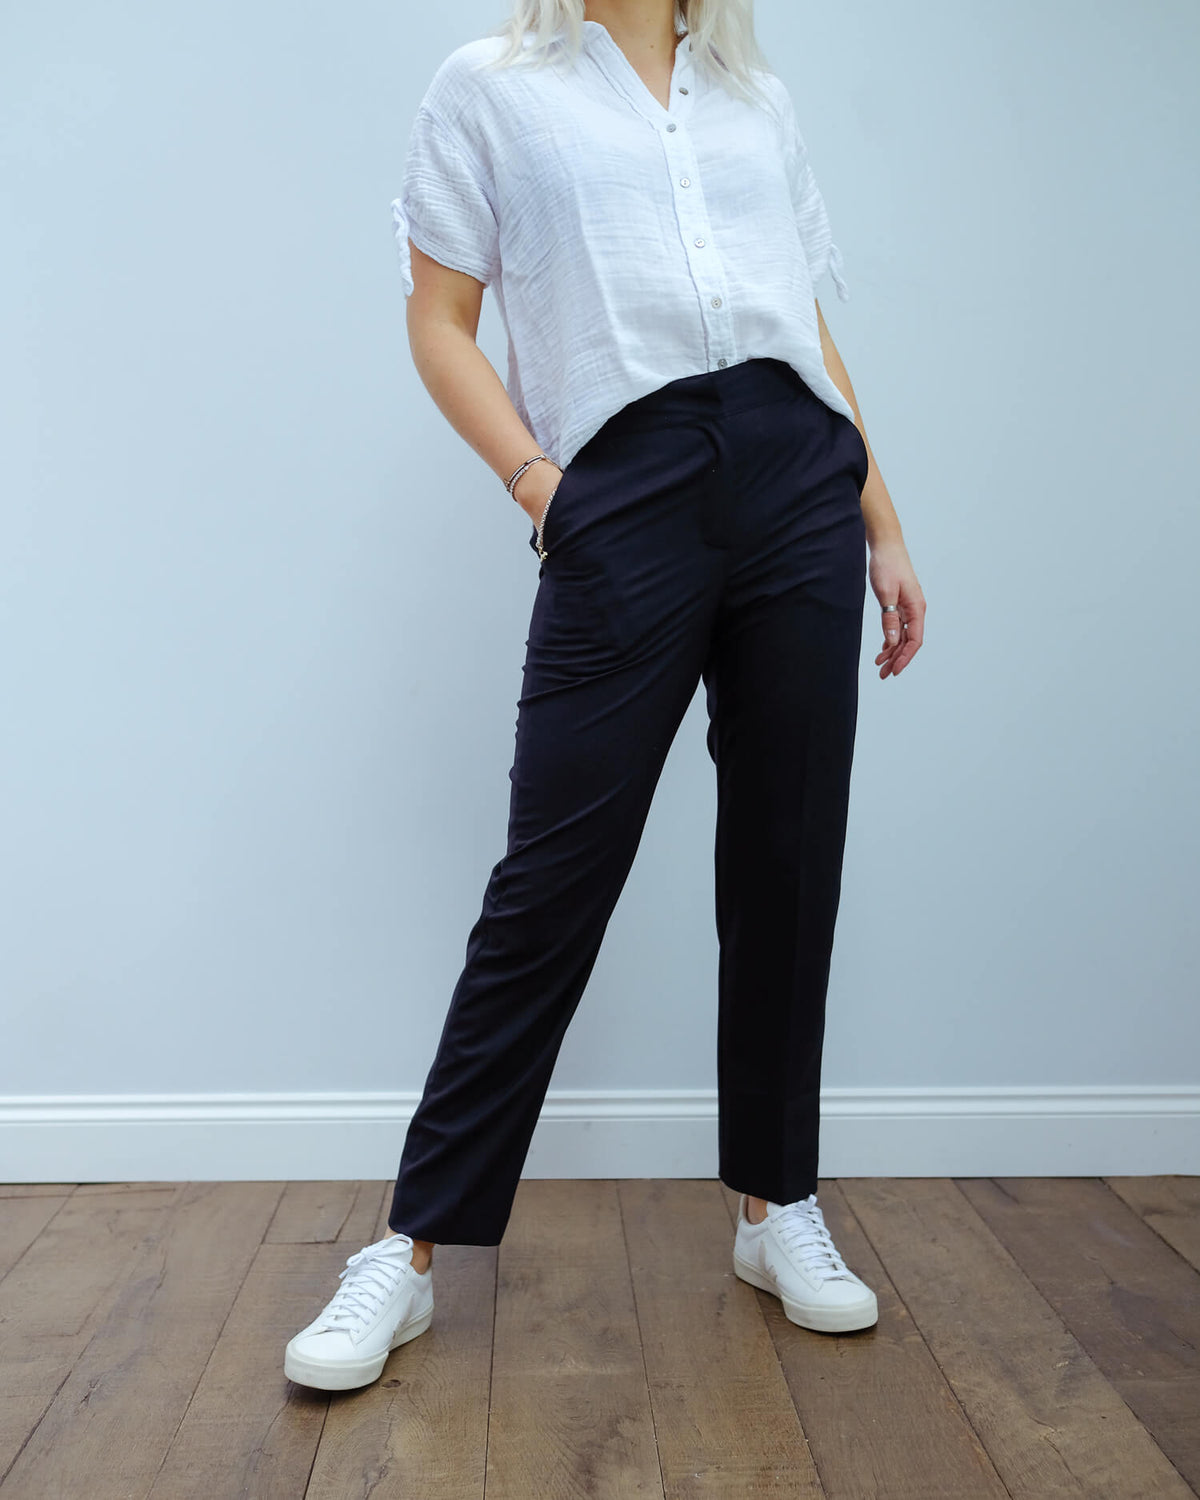 LOR Rou movi pants in navy